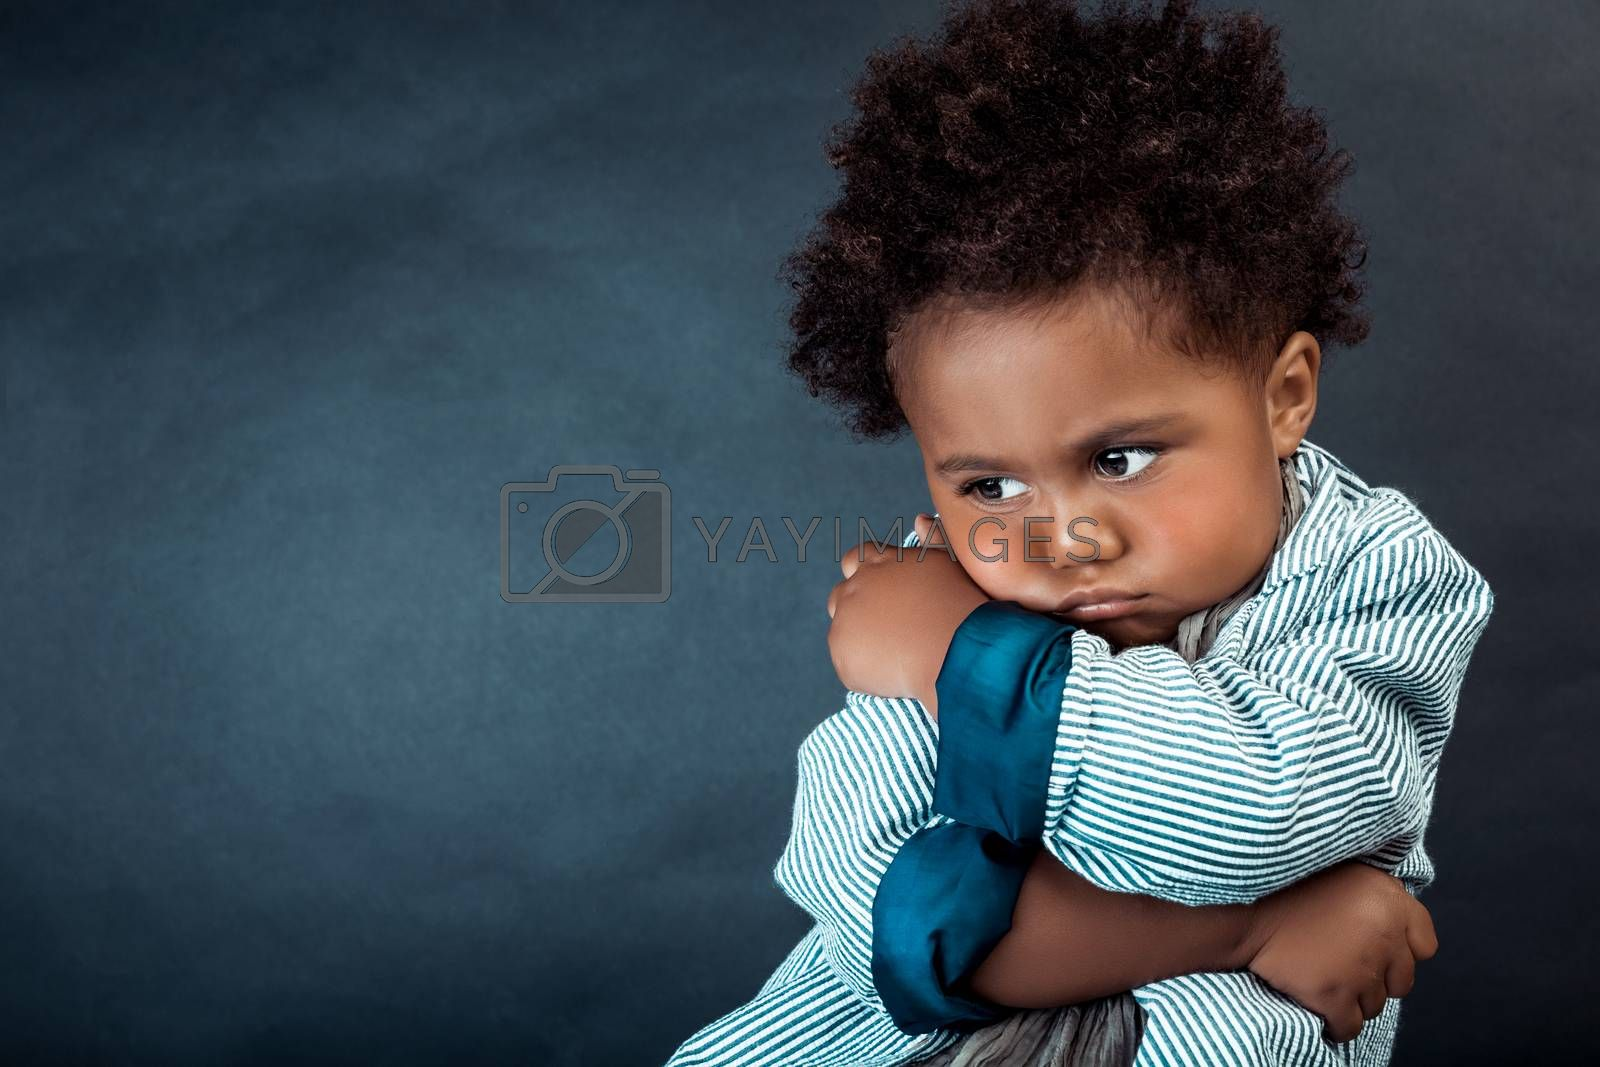 Portrait of a Little Cute Upset African-American Boy Over Dark Background. Baby Model. Unhappiness and Sadness Concept.